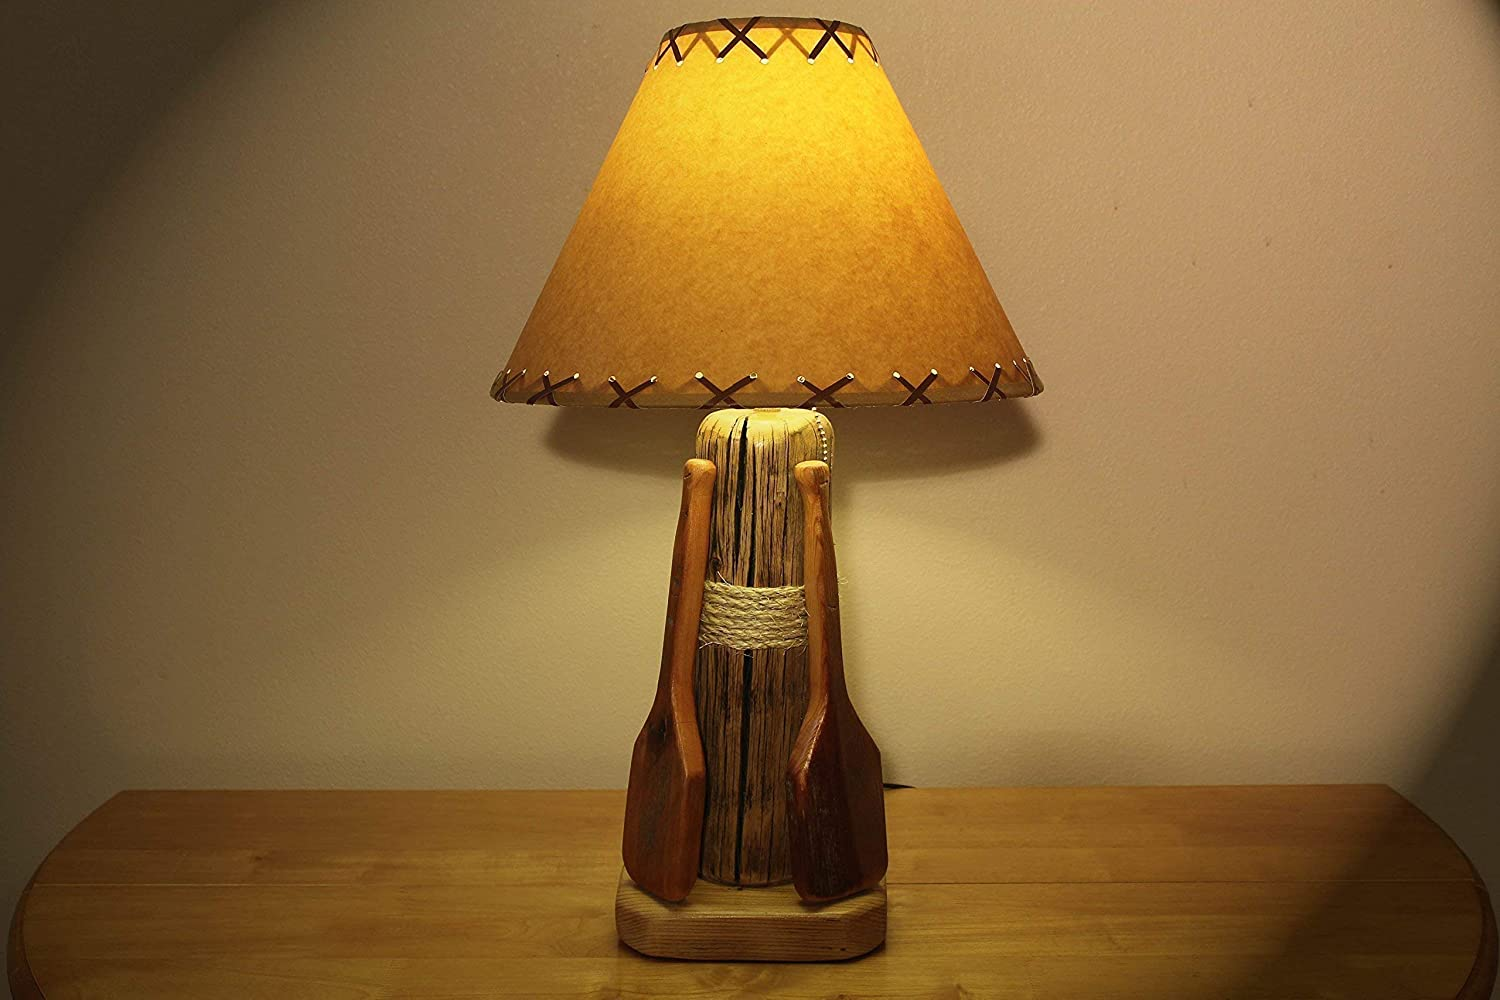 Rustic Cabin Lodge Style Lamp.The Redfish Lamp w Lake Max 79% OFF Hand Save money Table